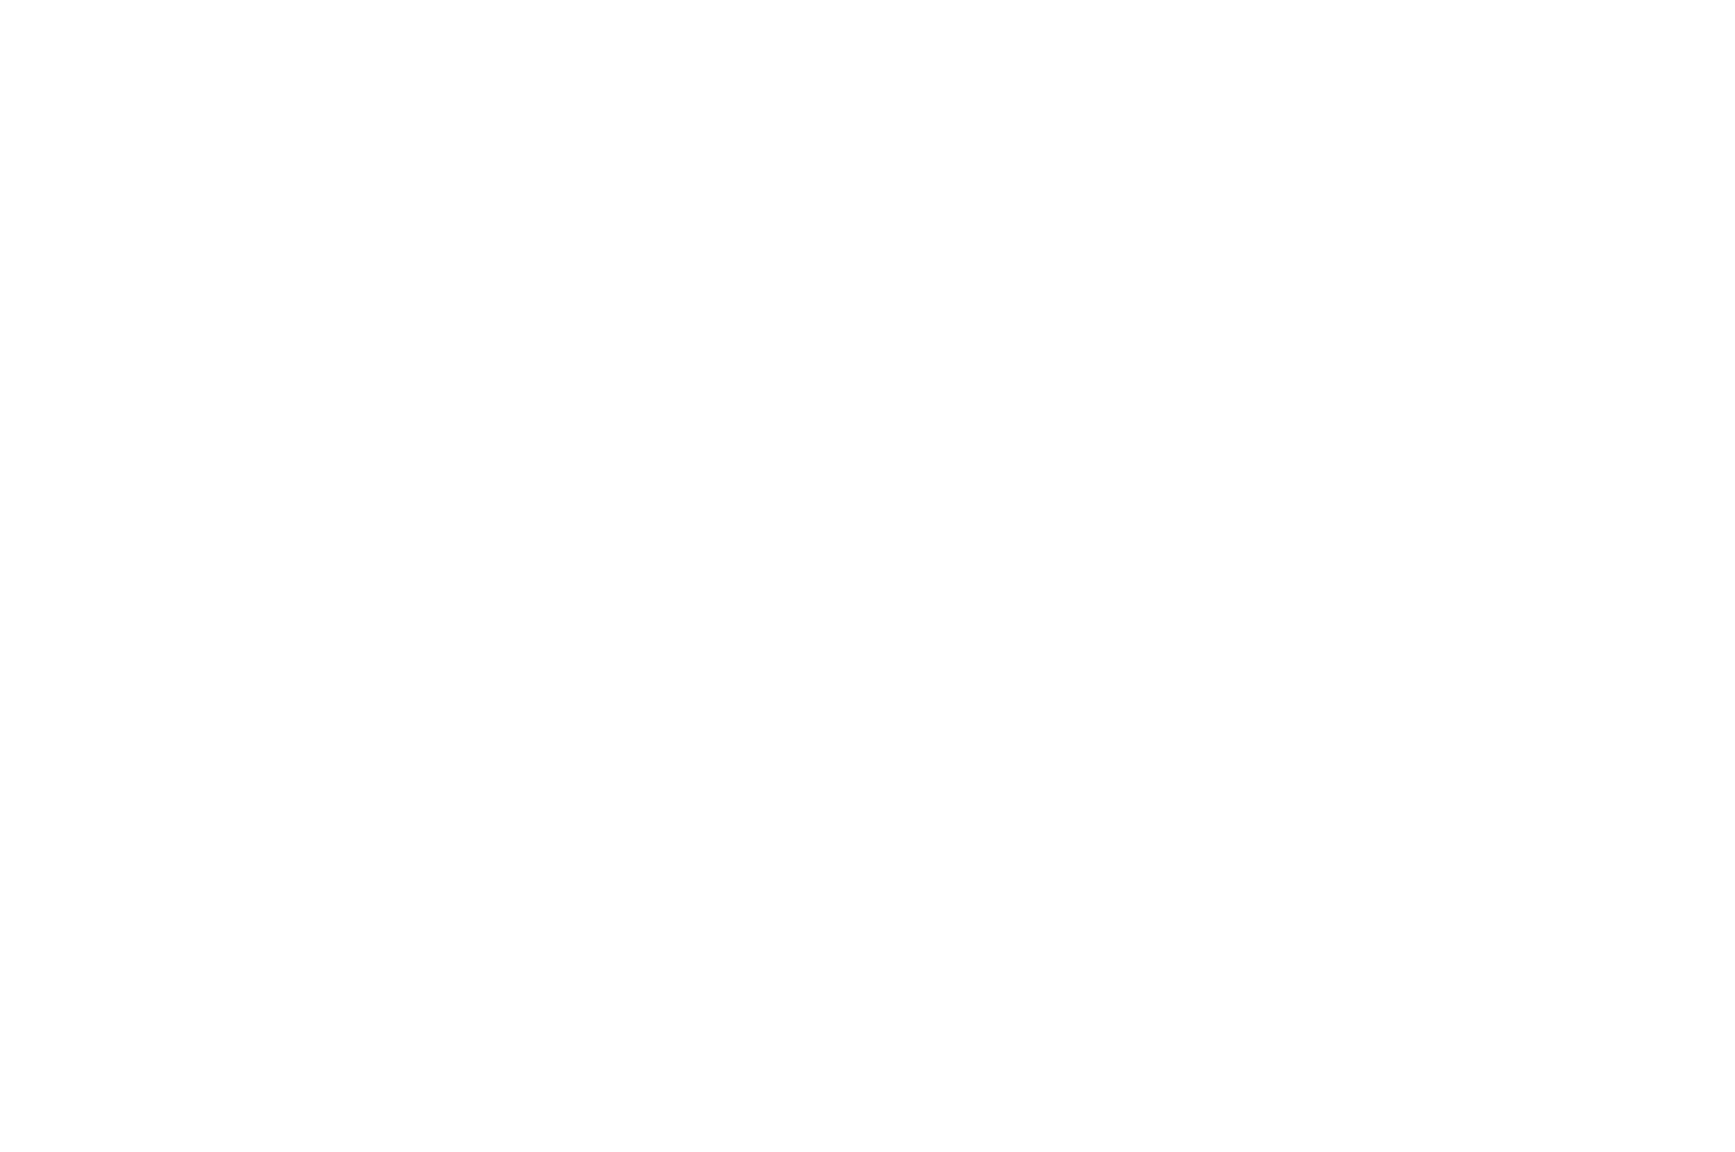 FINALIST - PAGE International Screenwriting Awards